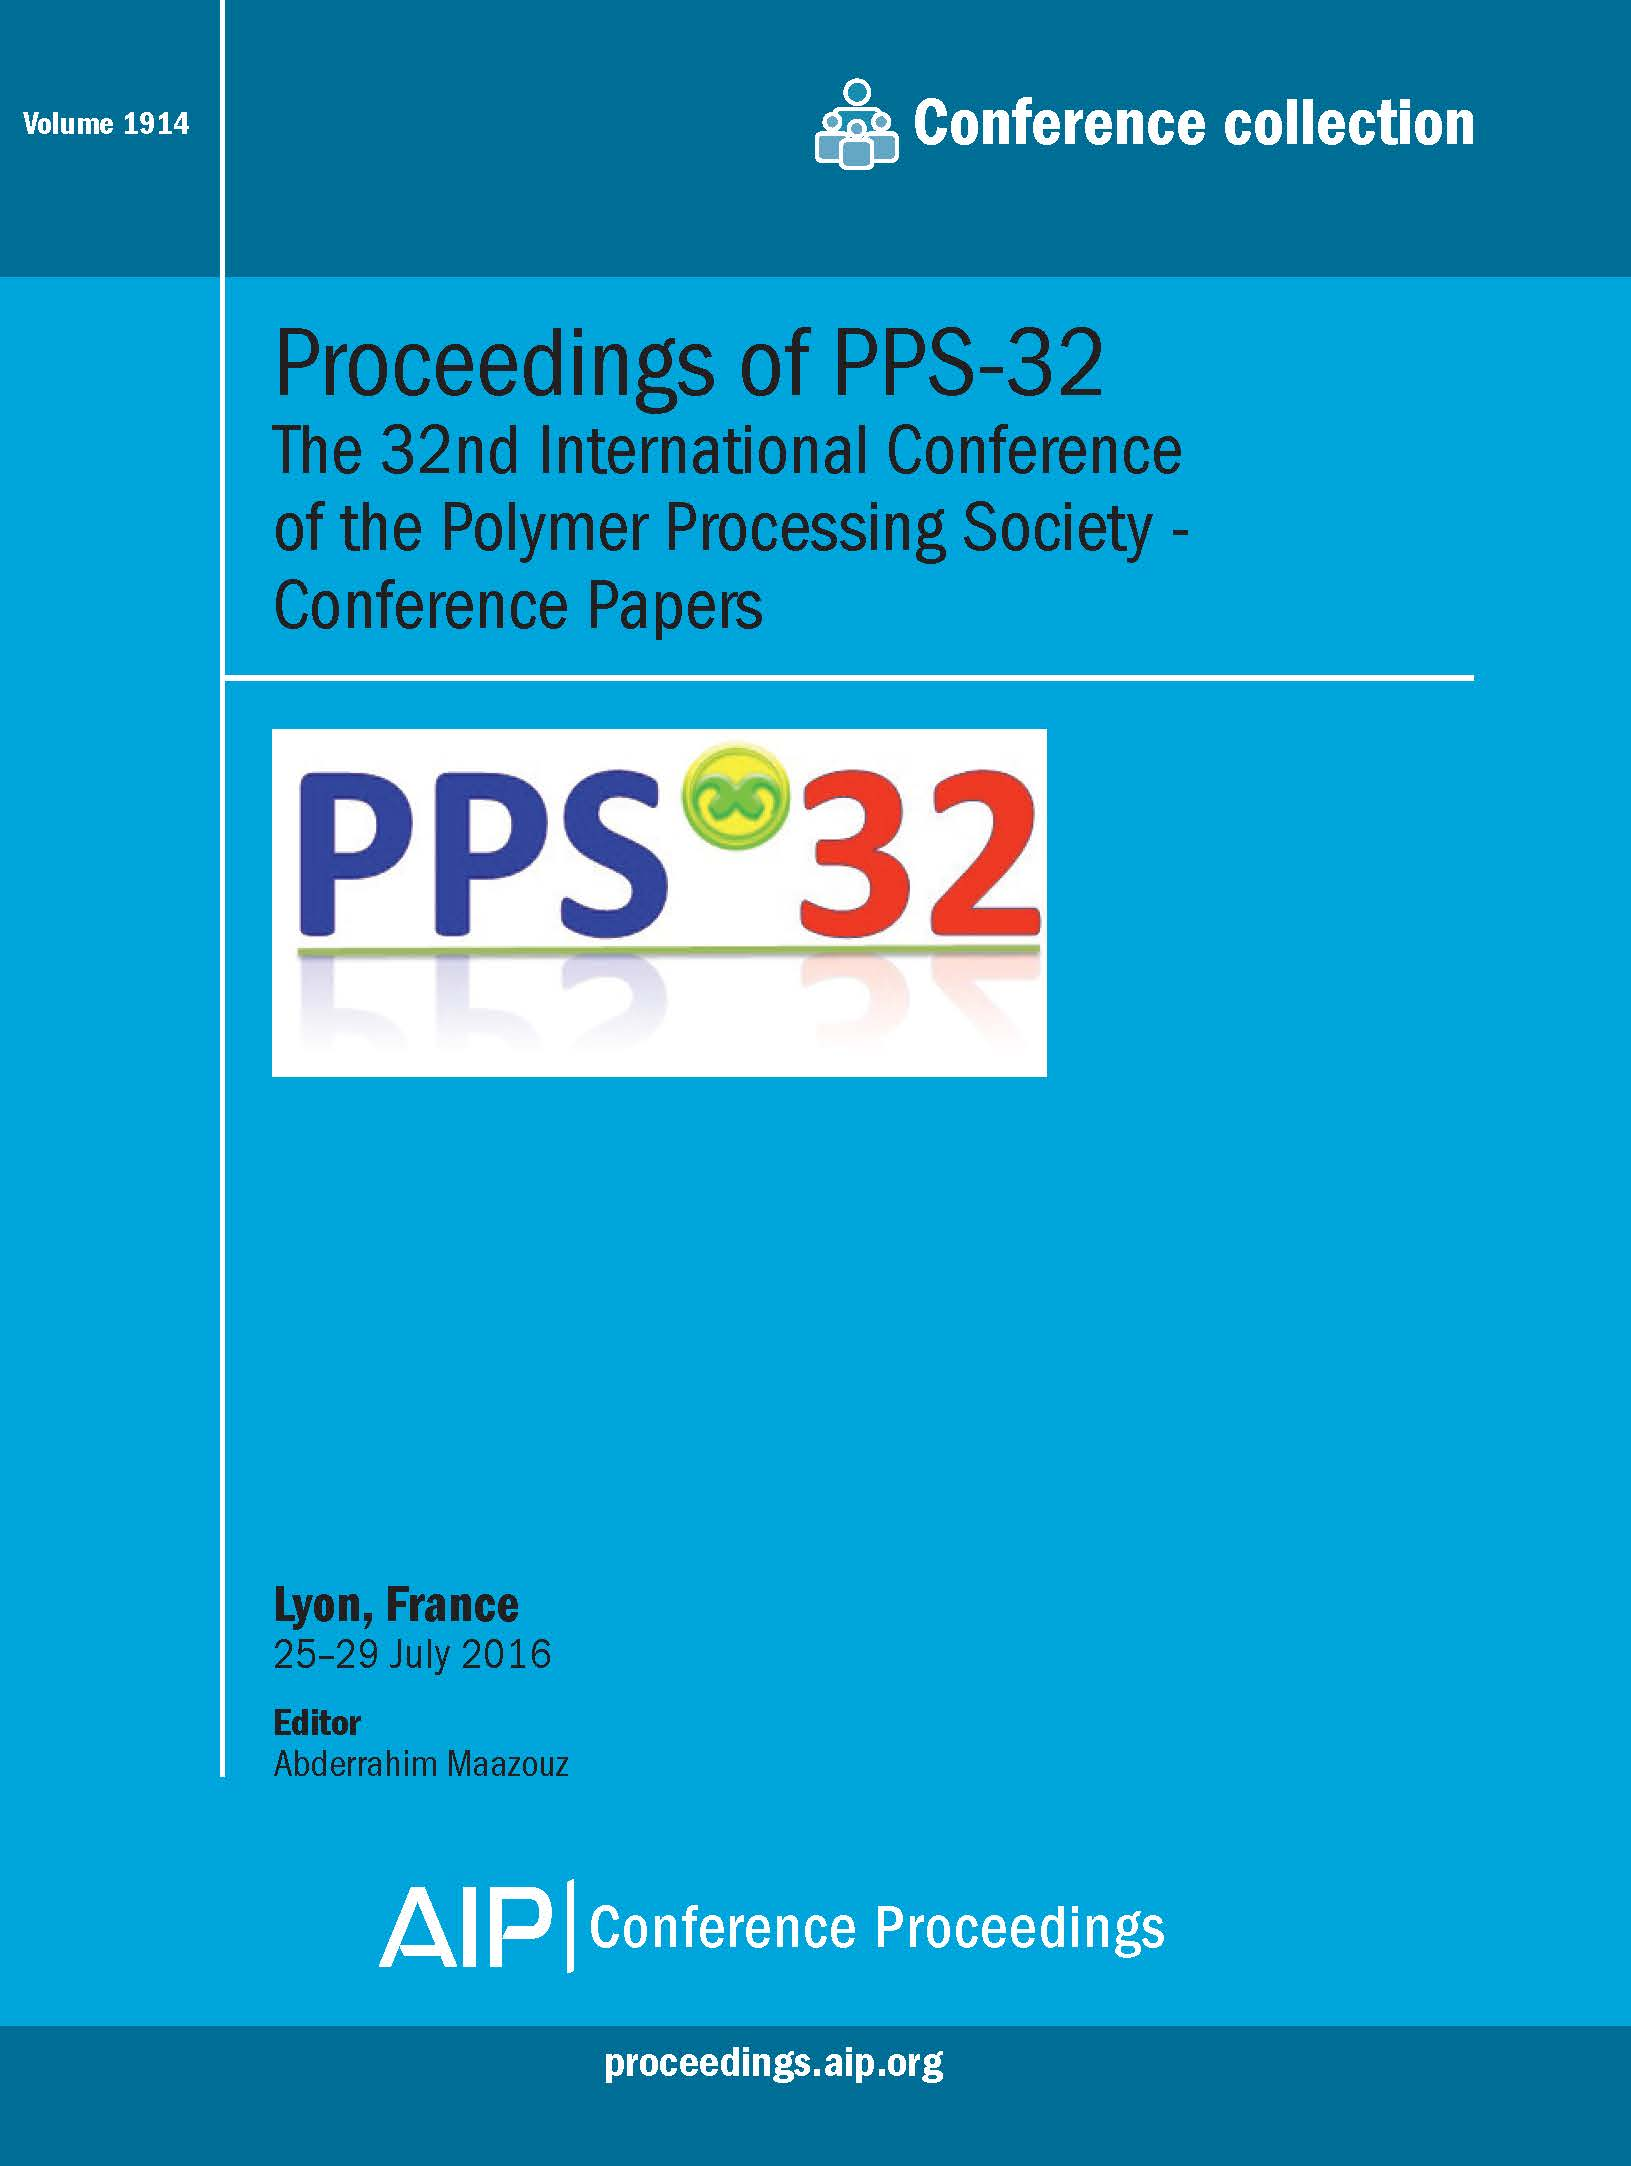 Volume 1914: Proceedings of PPS-32   AIP Publishing Print on Demand